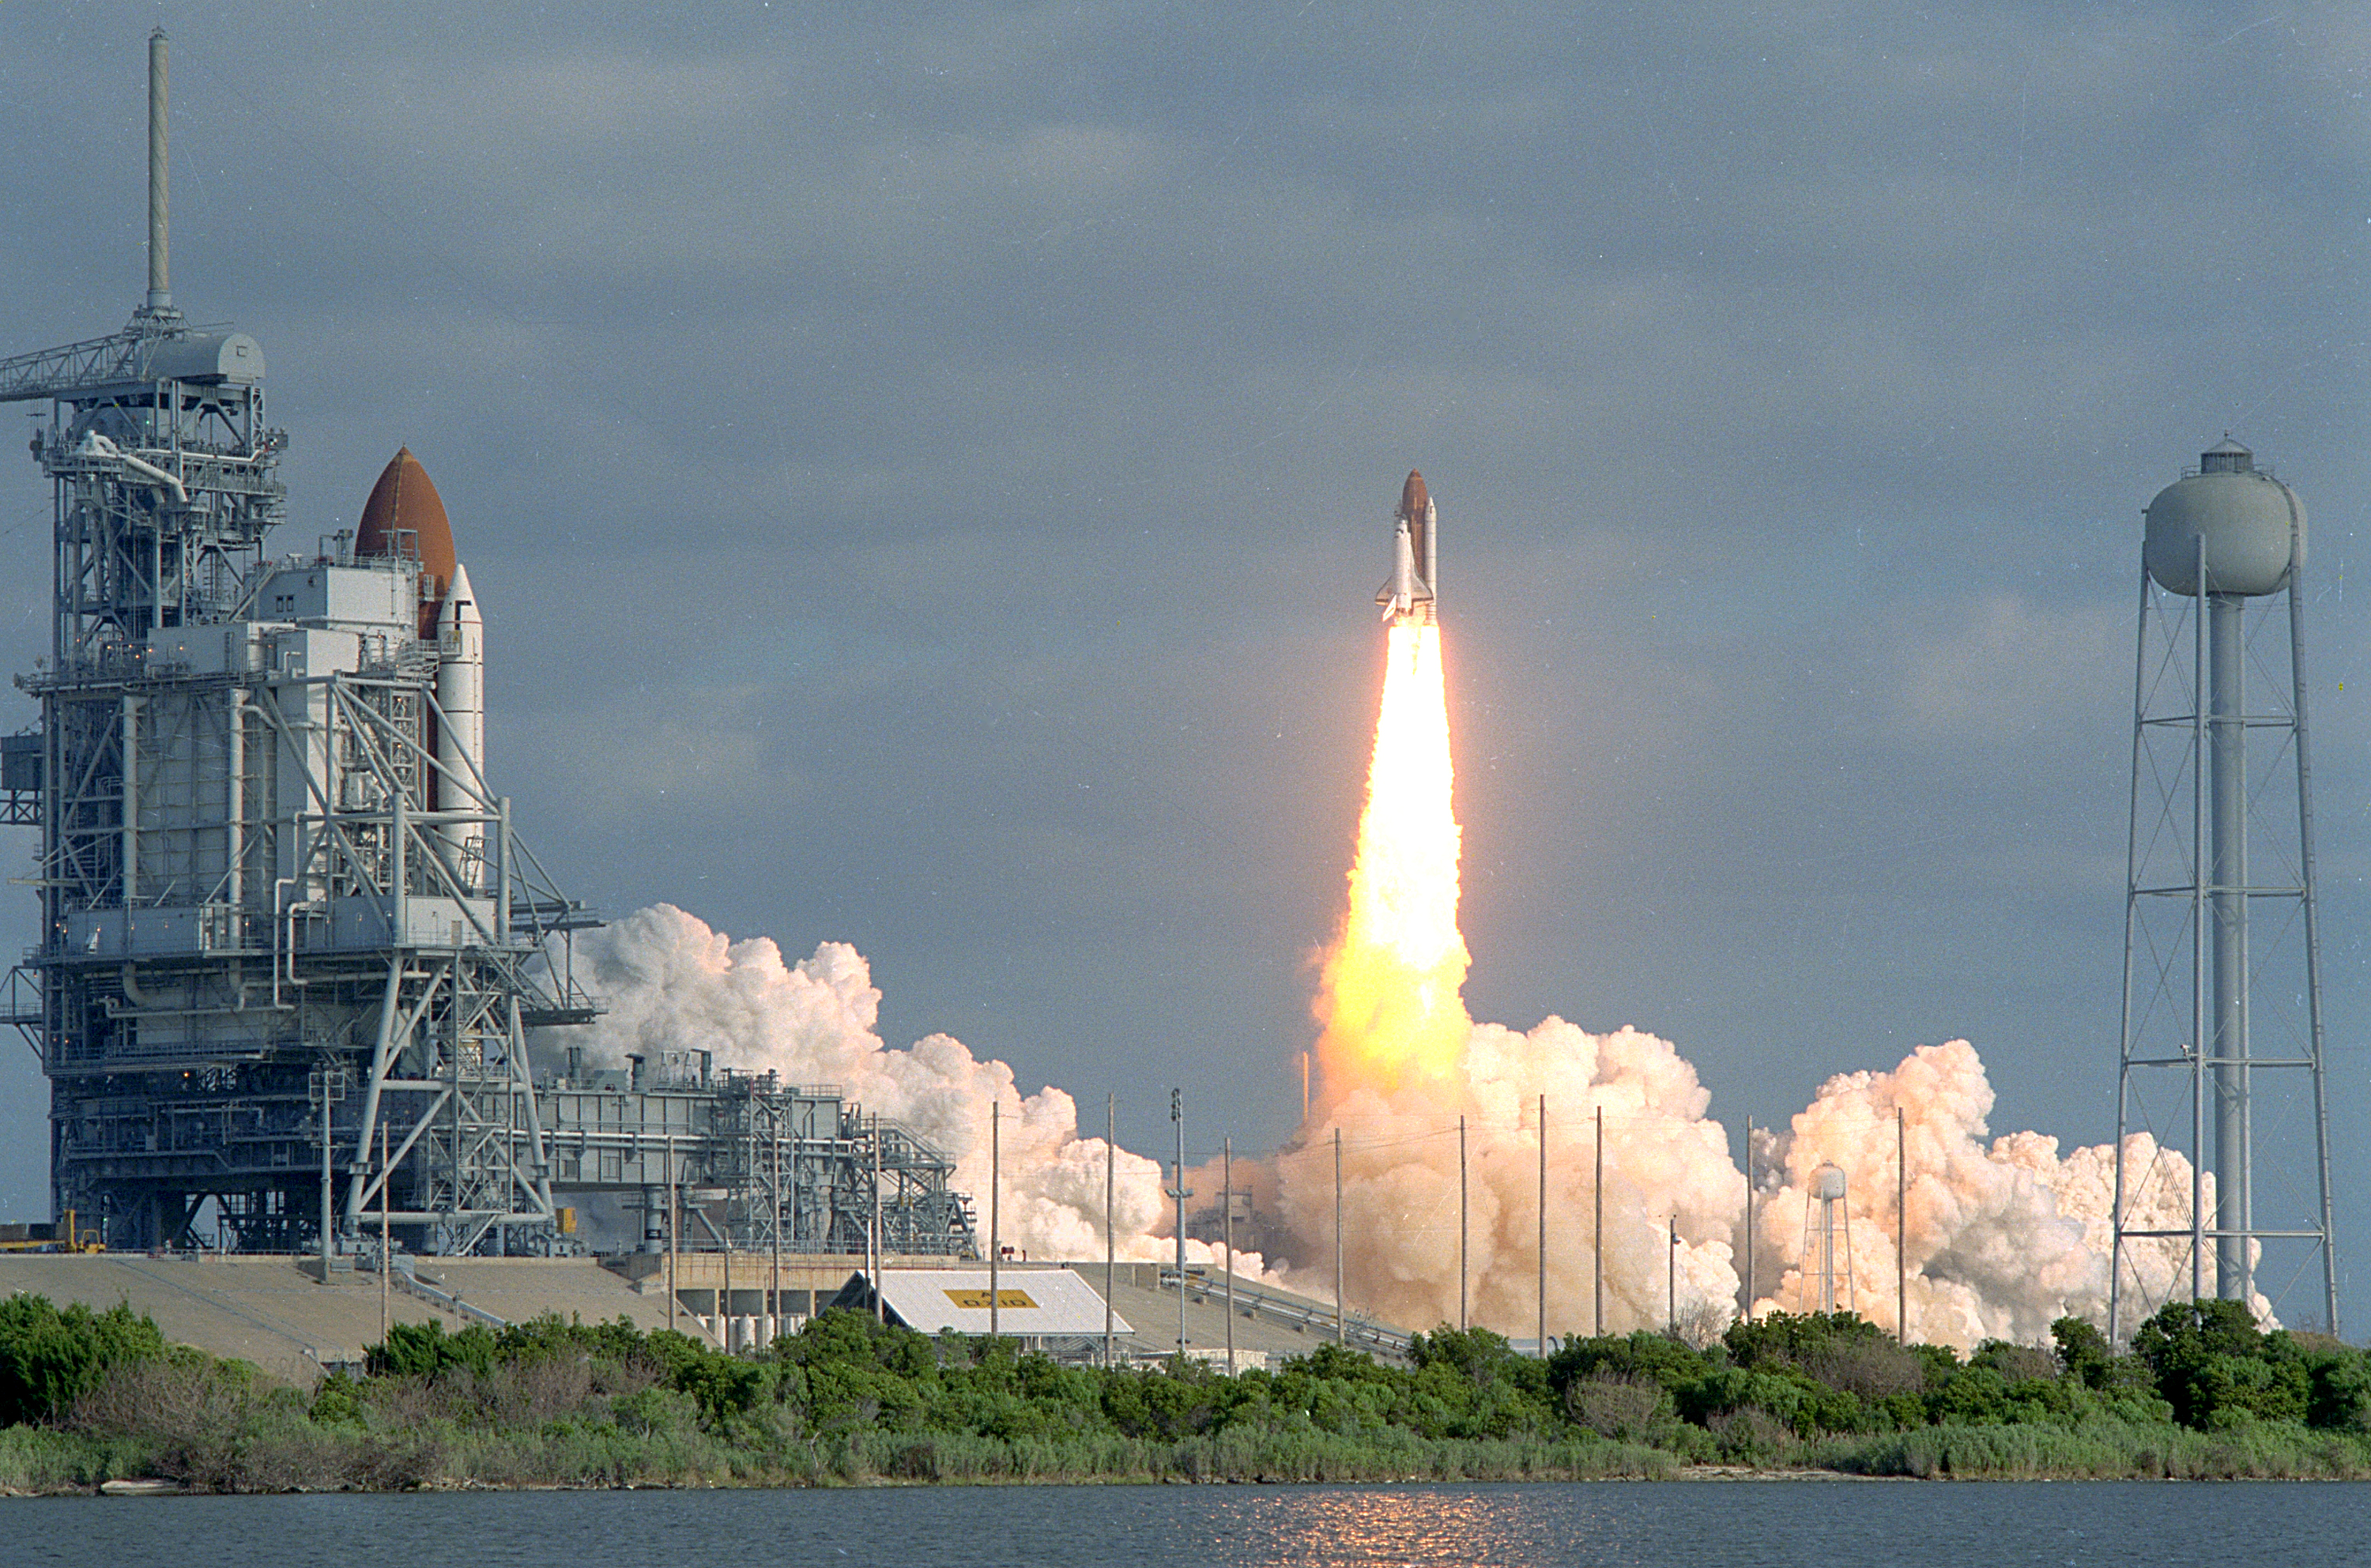 This Week in Rocket History: STS-31 and the Hubble Space Telescope